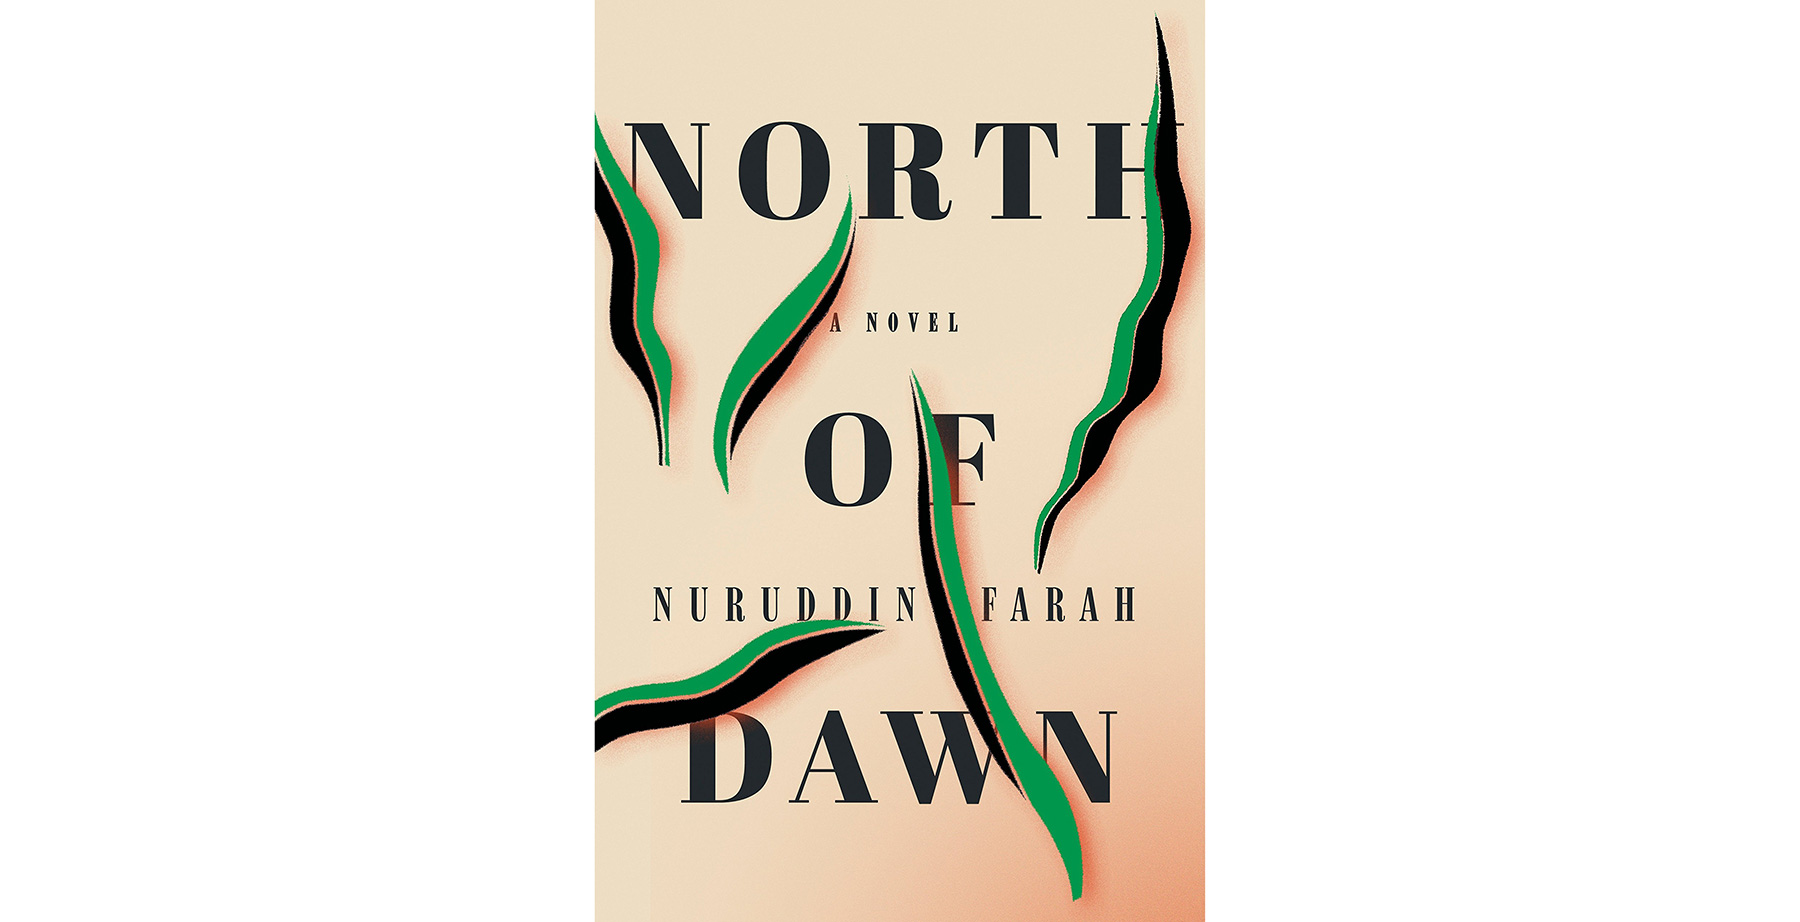 North of Dawn, by Nuruddin Farah